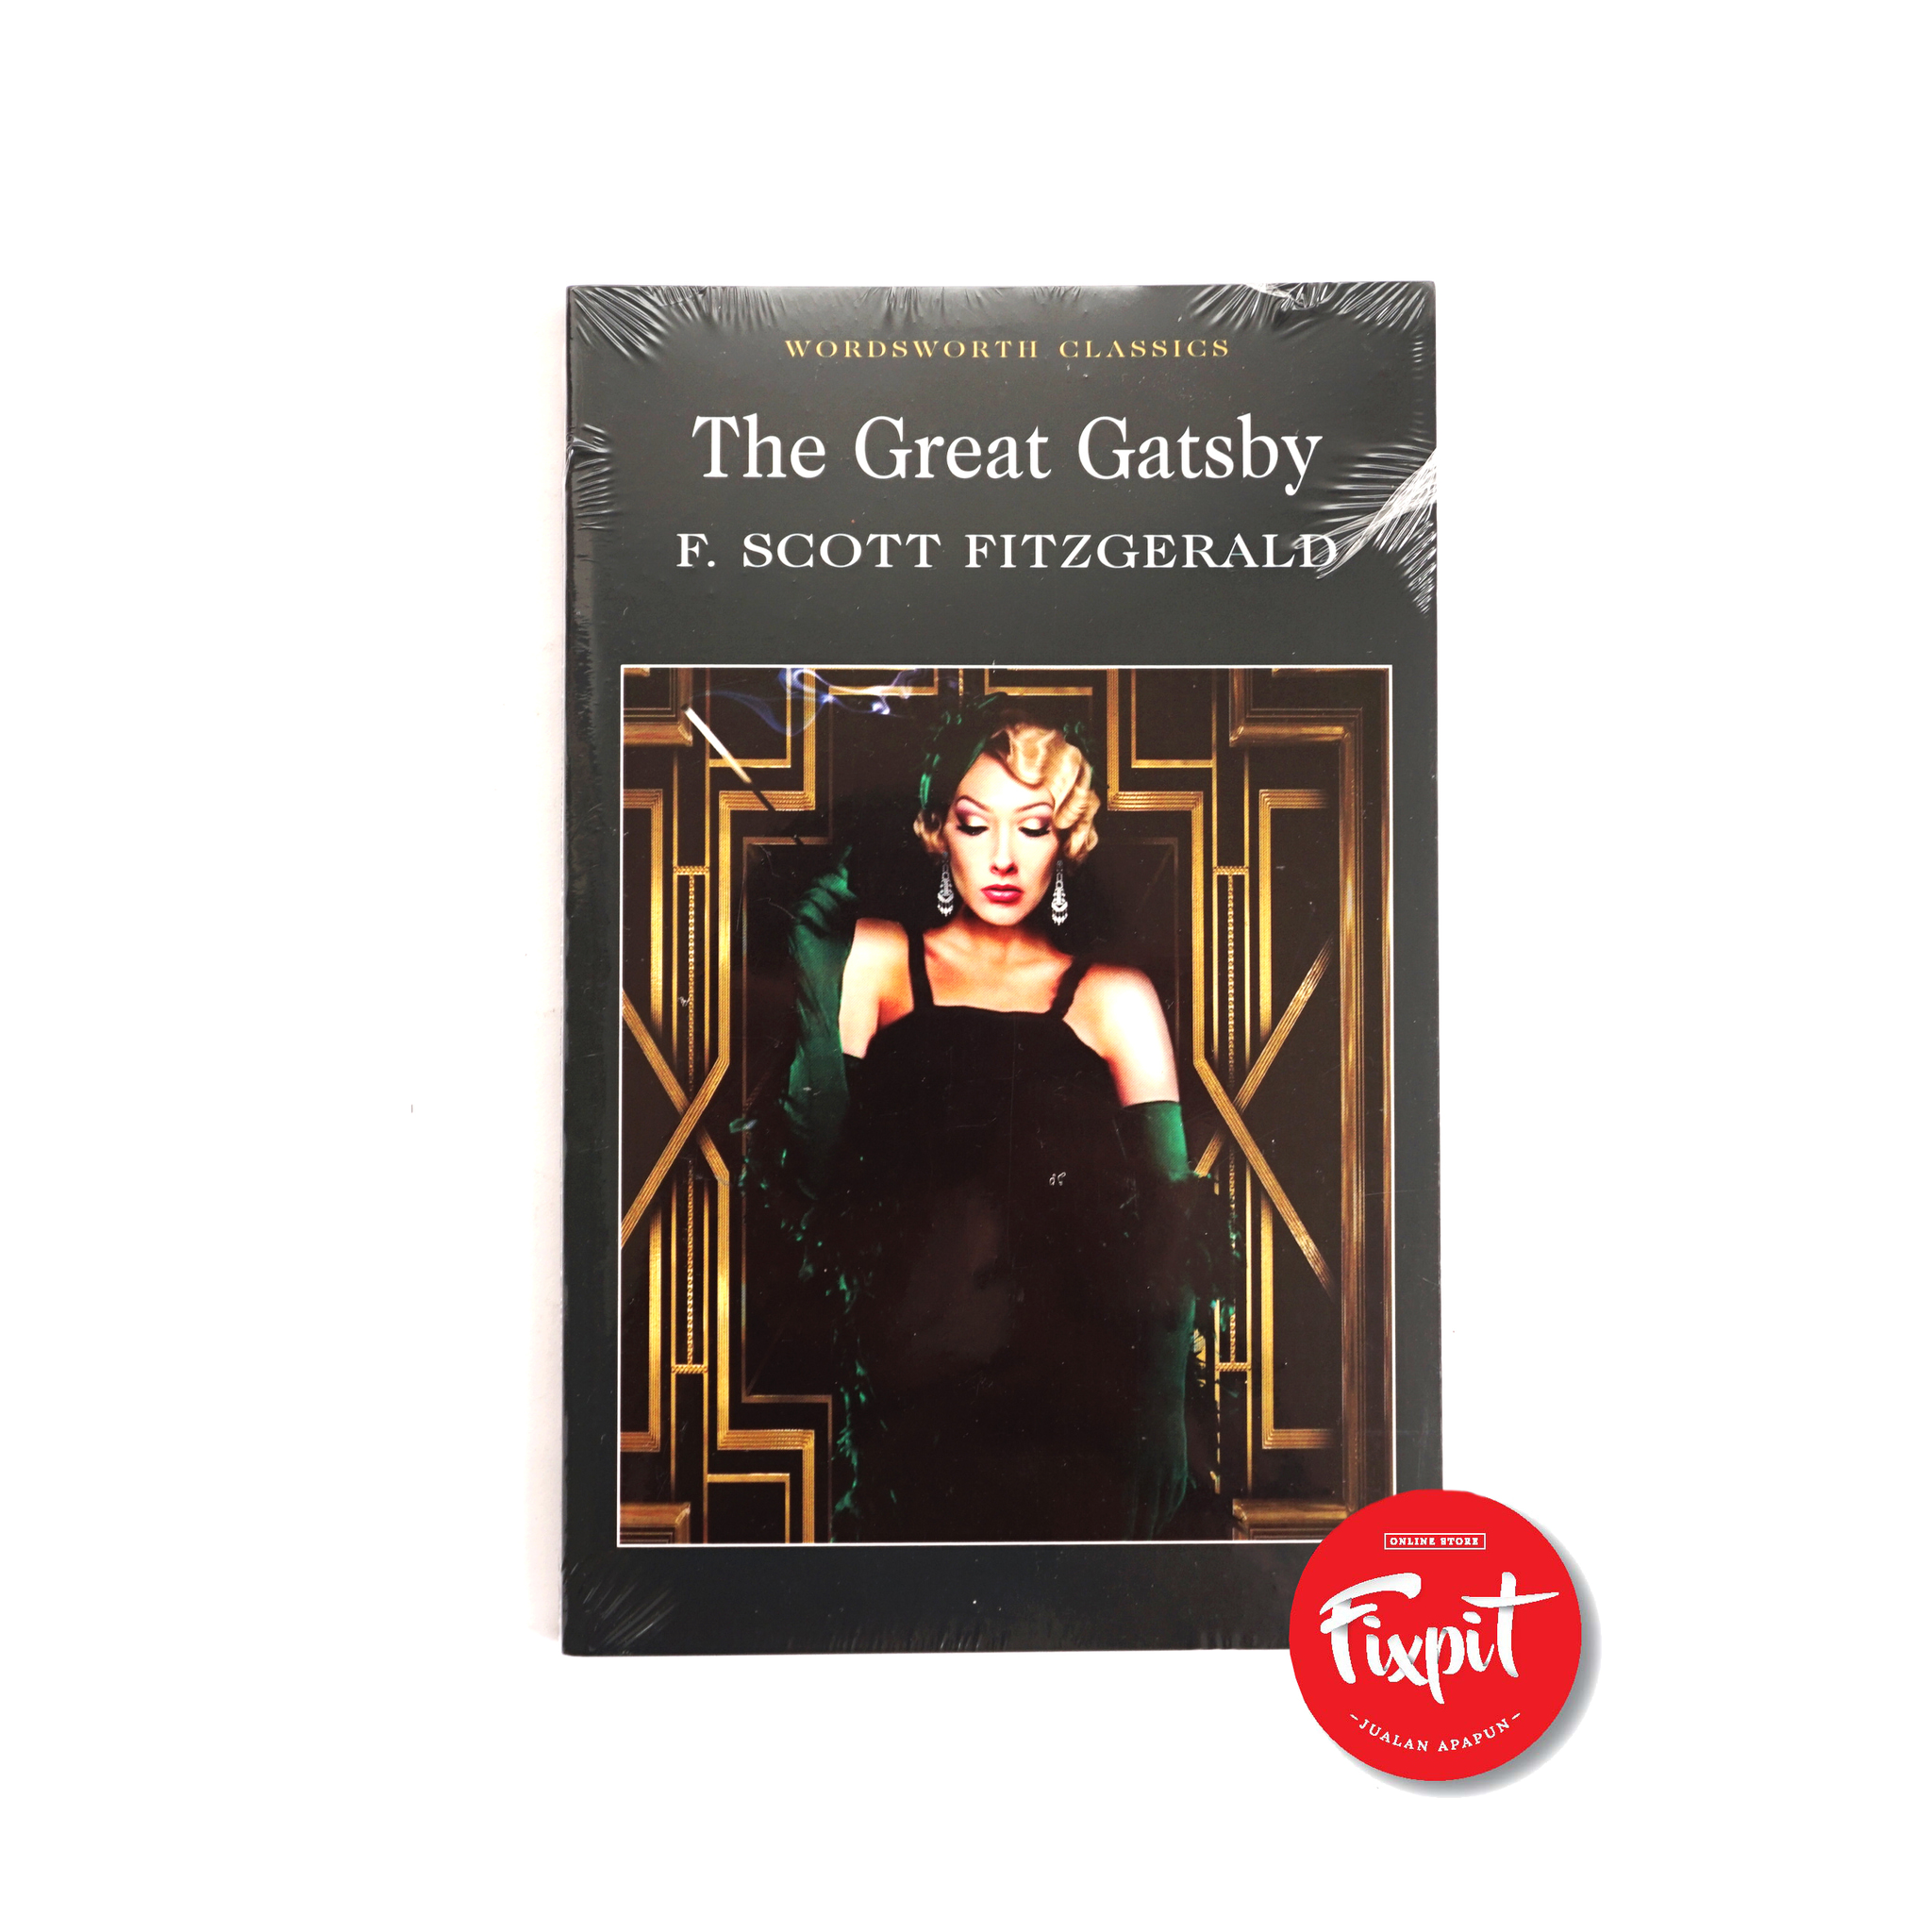 the great gatsby a novel of Watch video  a writer and wall street trader, nick, finds himself drawn to the past and lifestyle of his millionaire neighbor, jay gatsby.